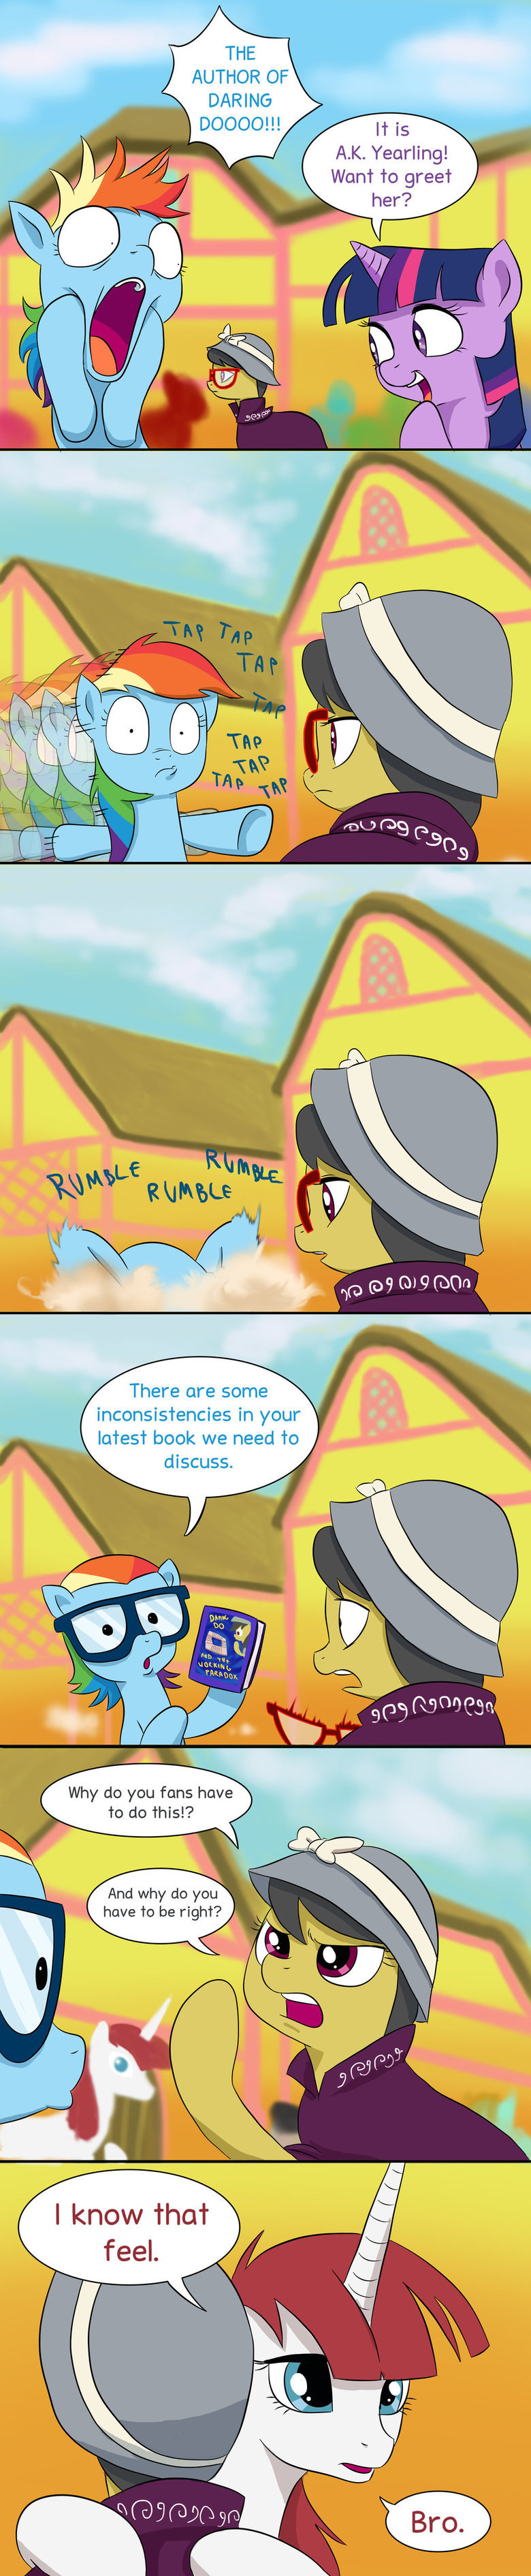 Book fans in a shellnut. Shiggy diggy, i got no sources. 99% sure this came from devient art though. Some insight for those of you who do not hor- i mean are no